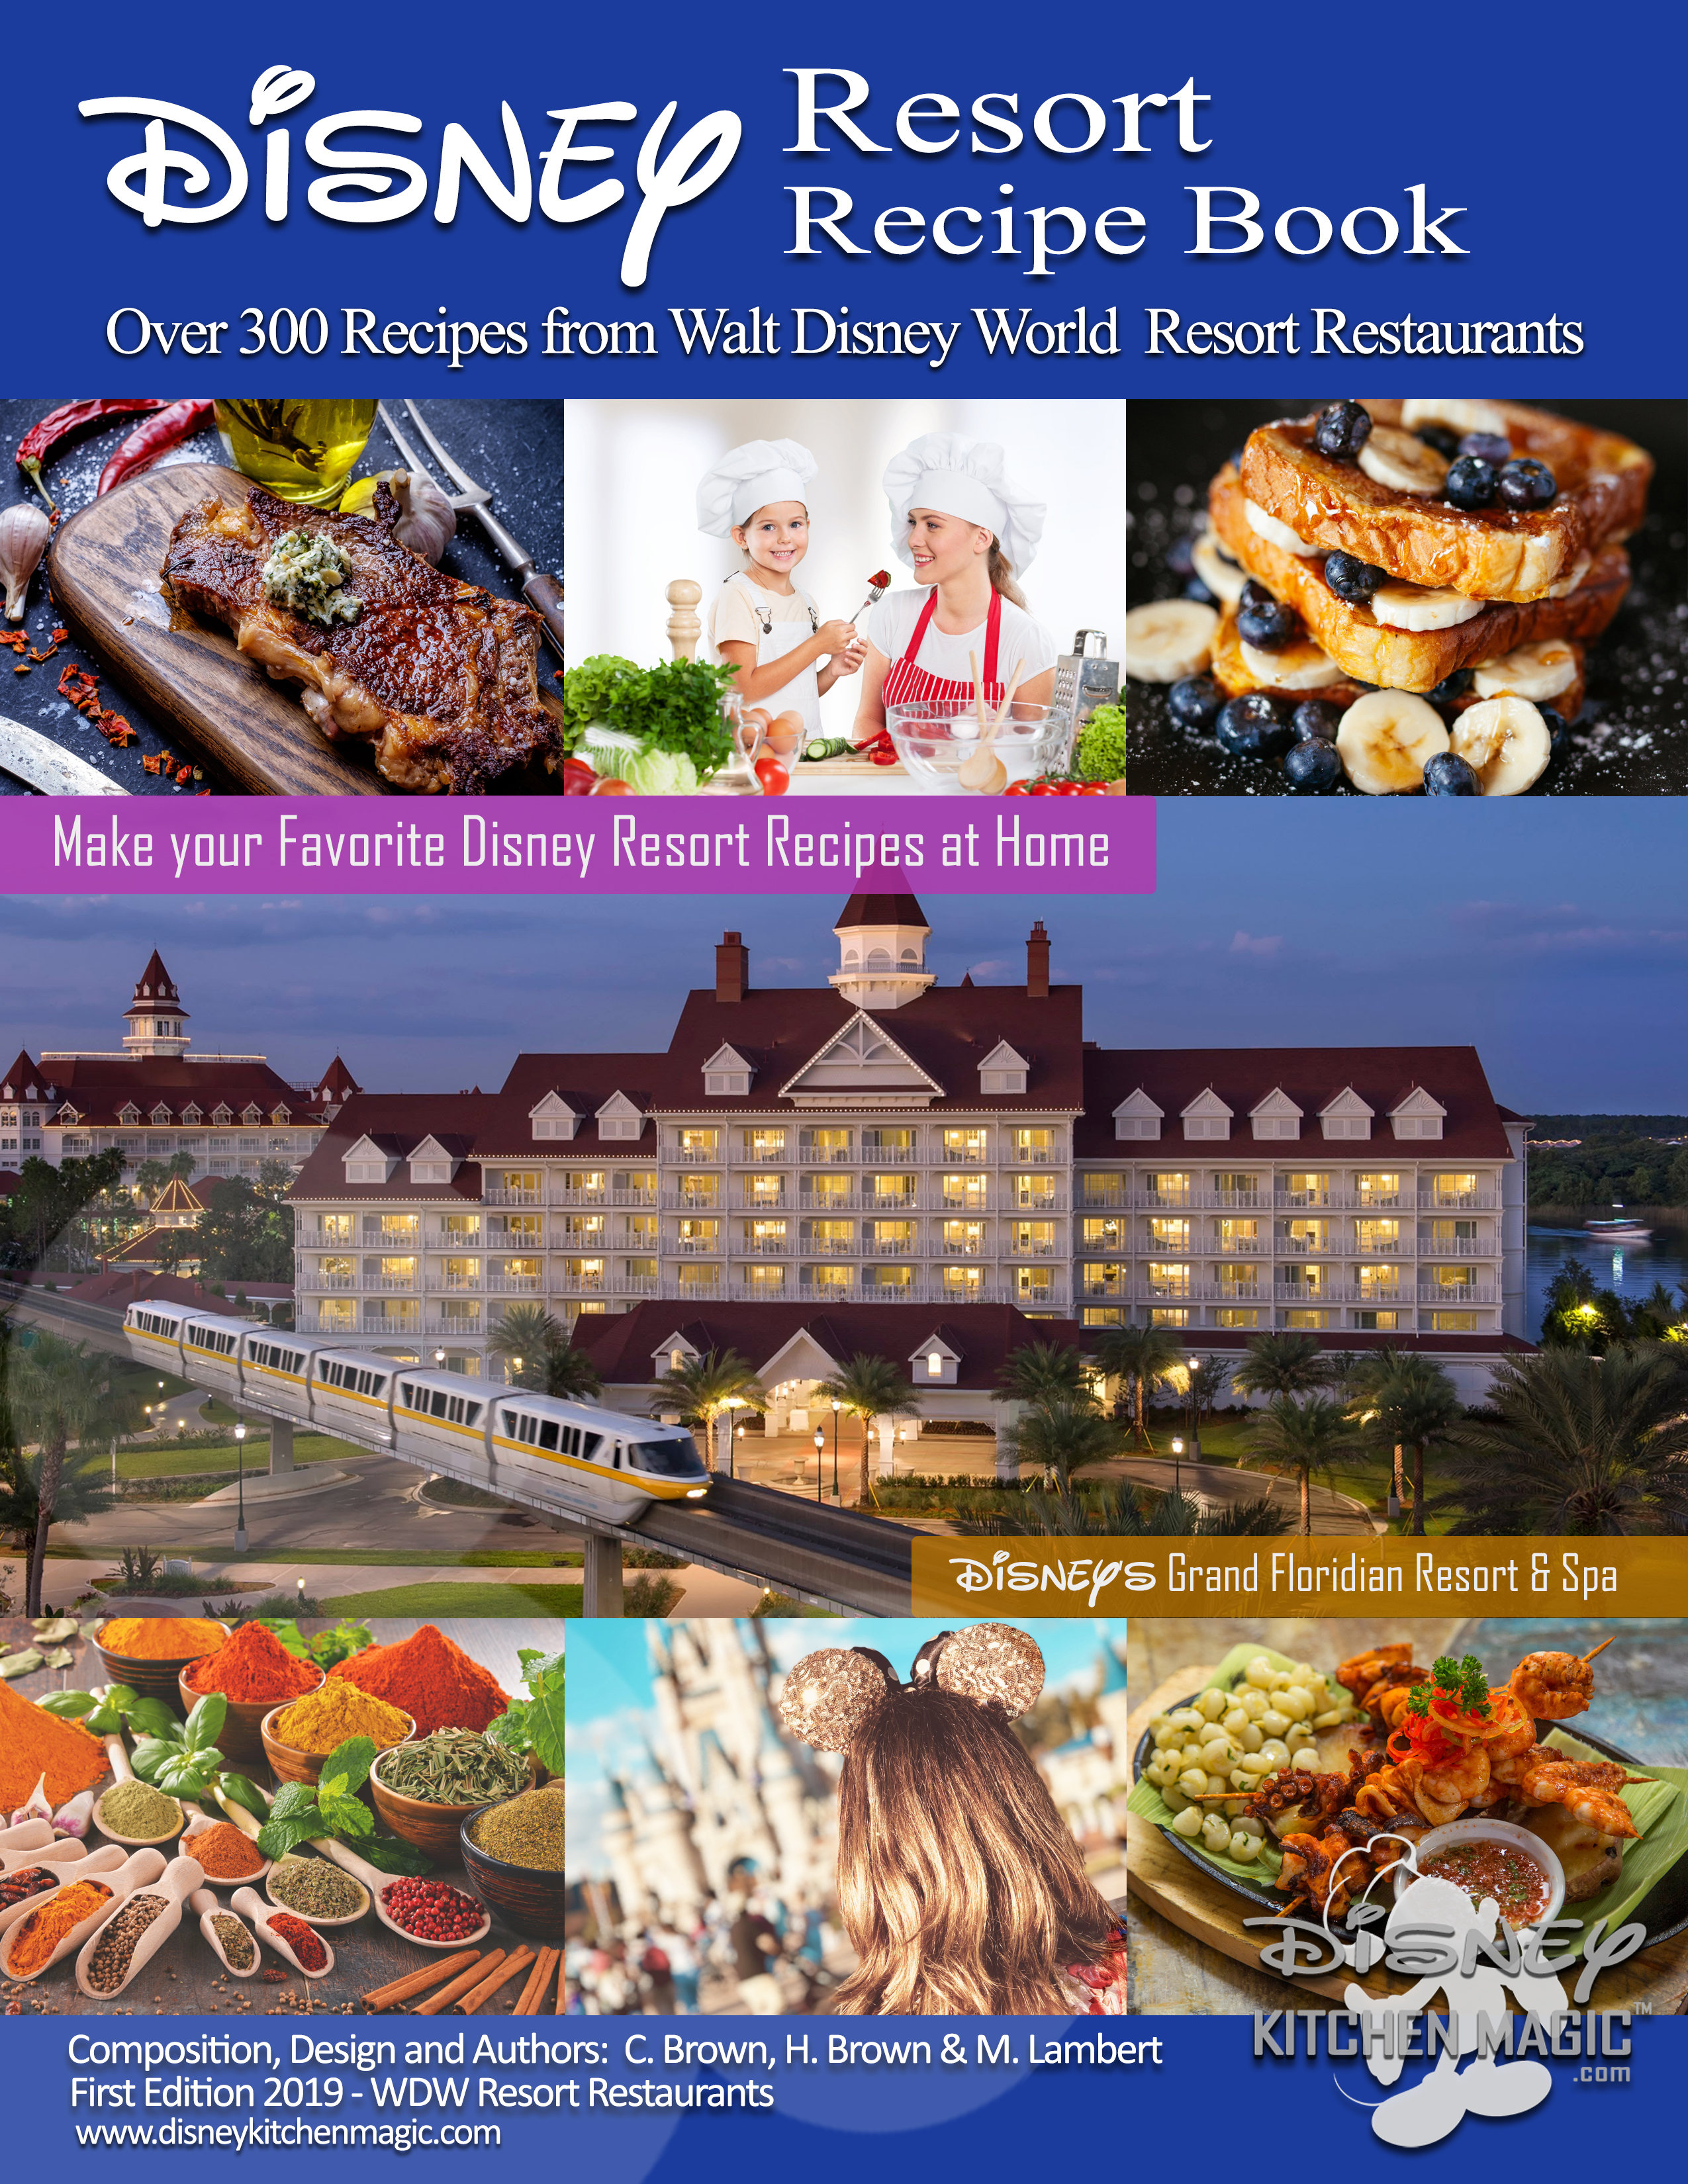 Disney Resort Recipe Book - First Edition 2019 - Cover